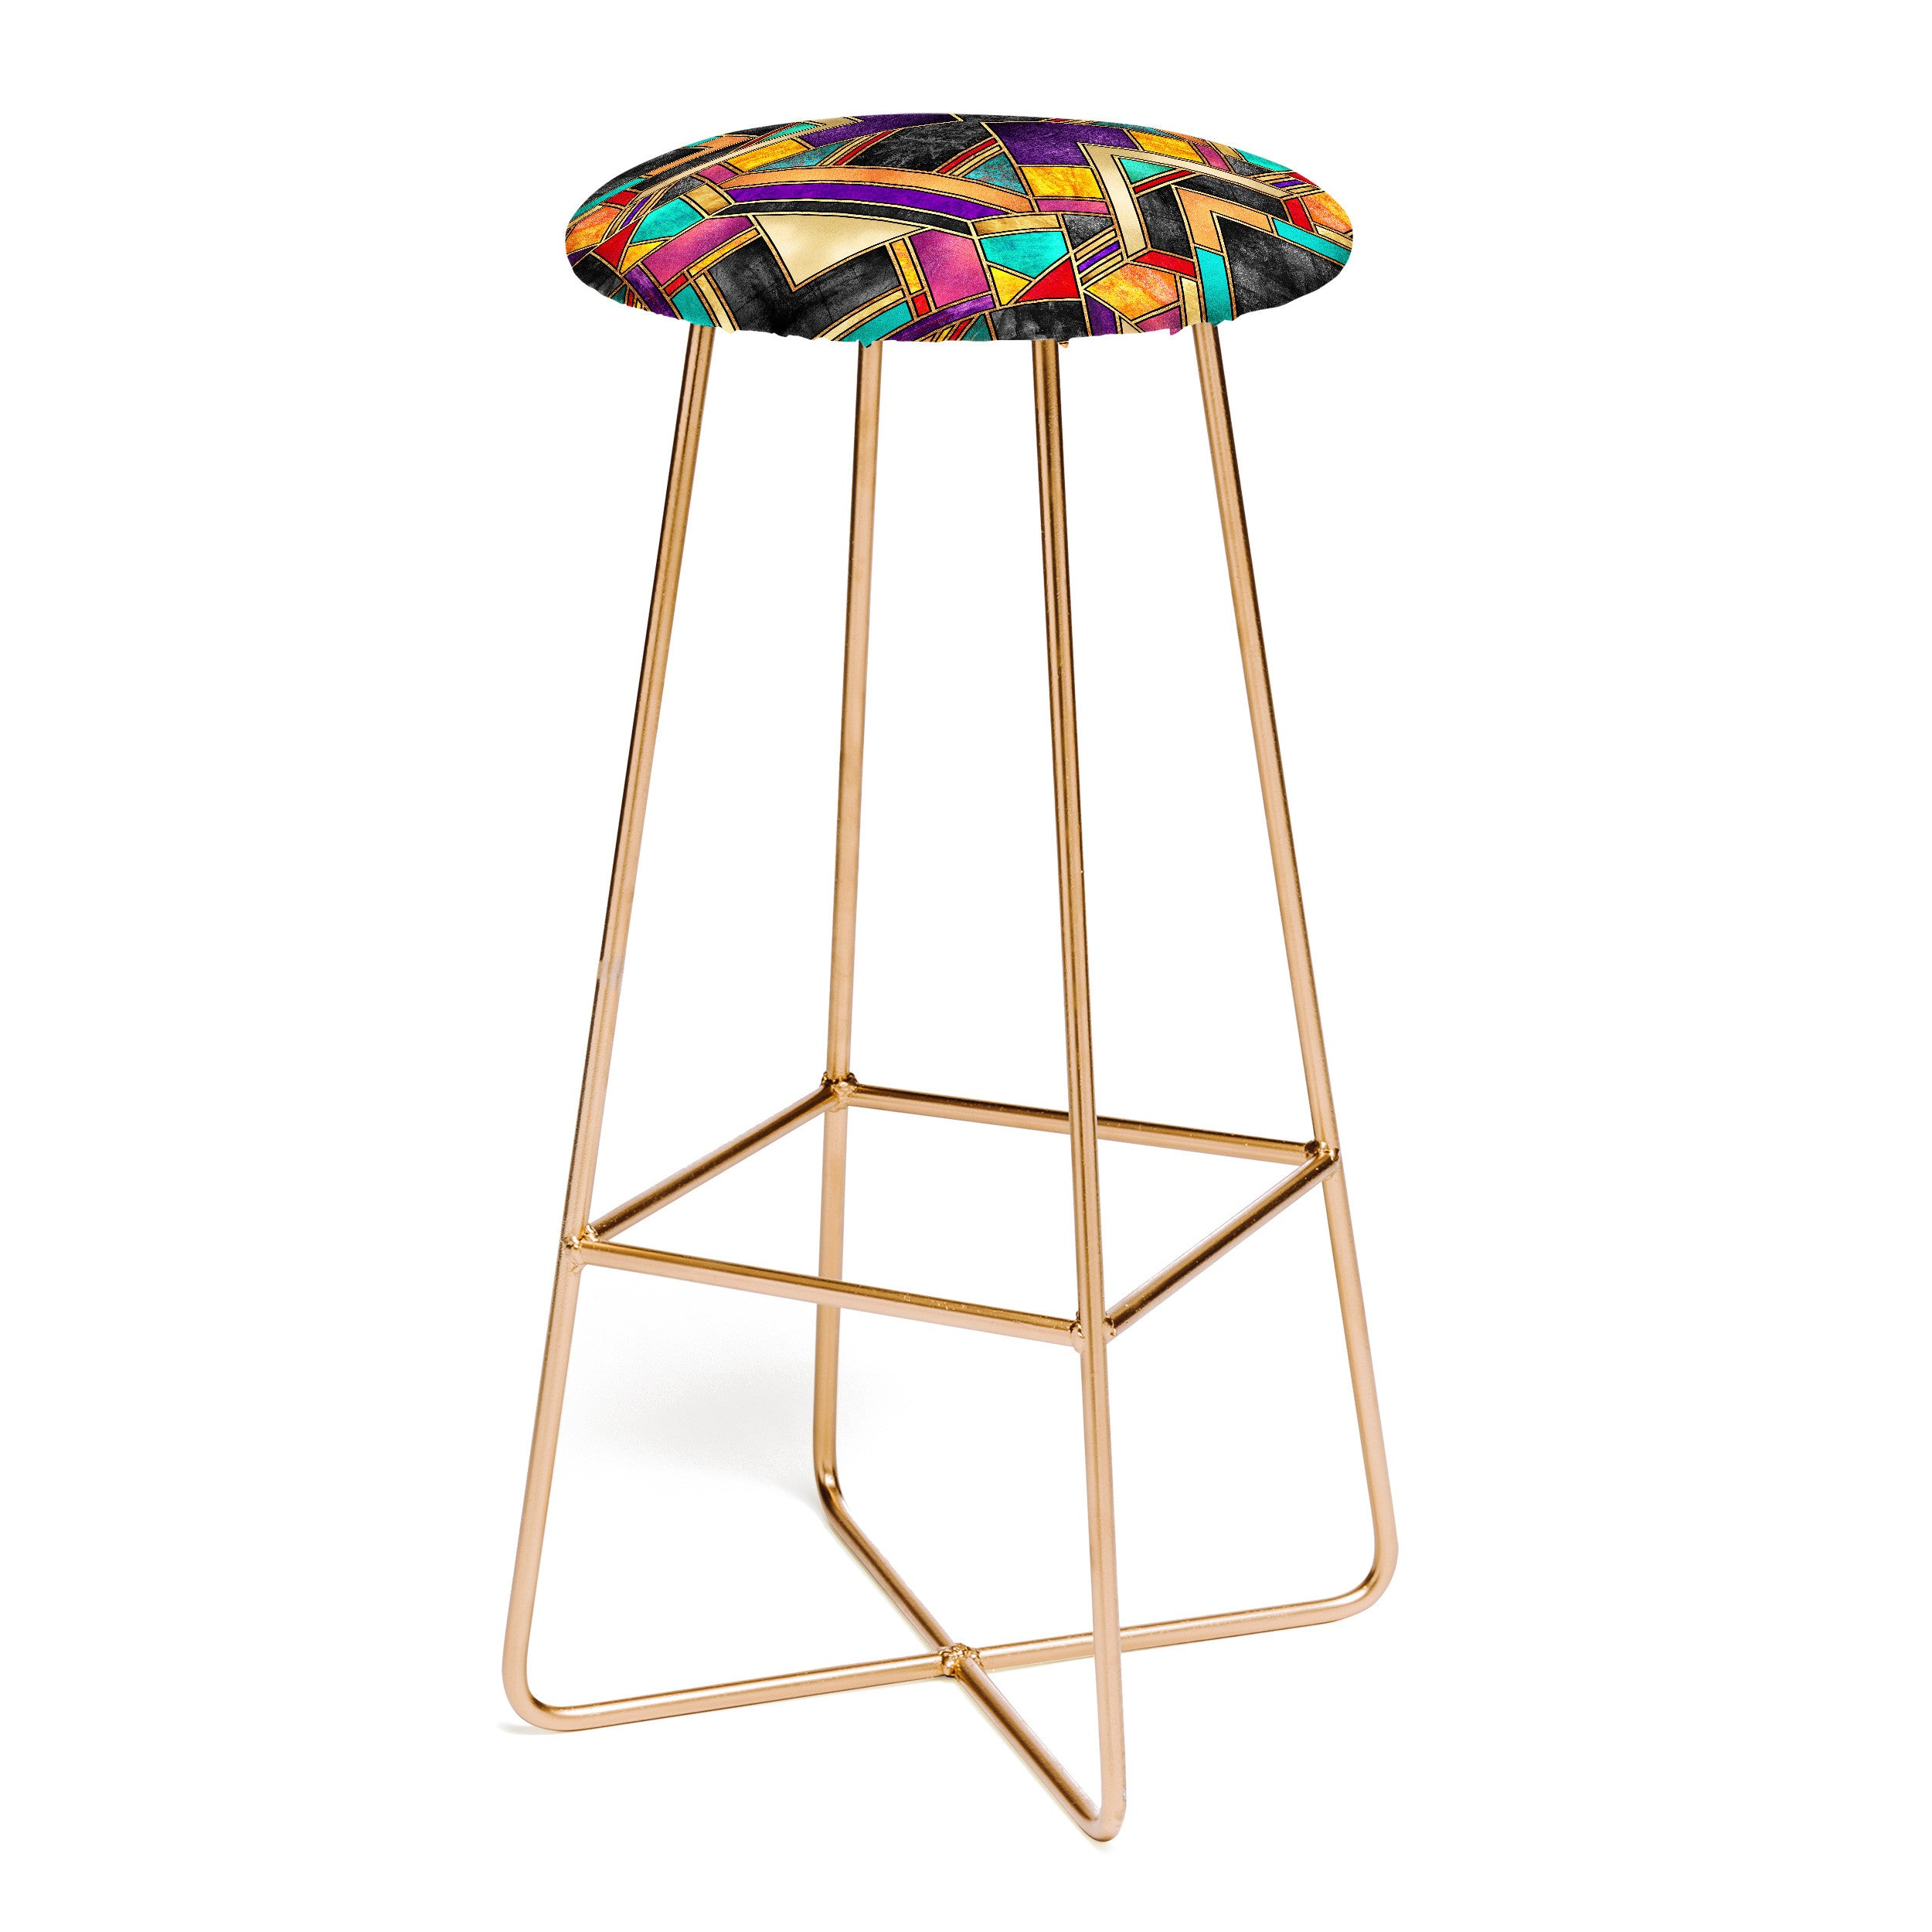 Elisabeth Fredriksson Colorful Art Deco Bar Stool